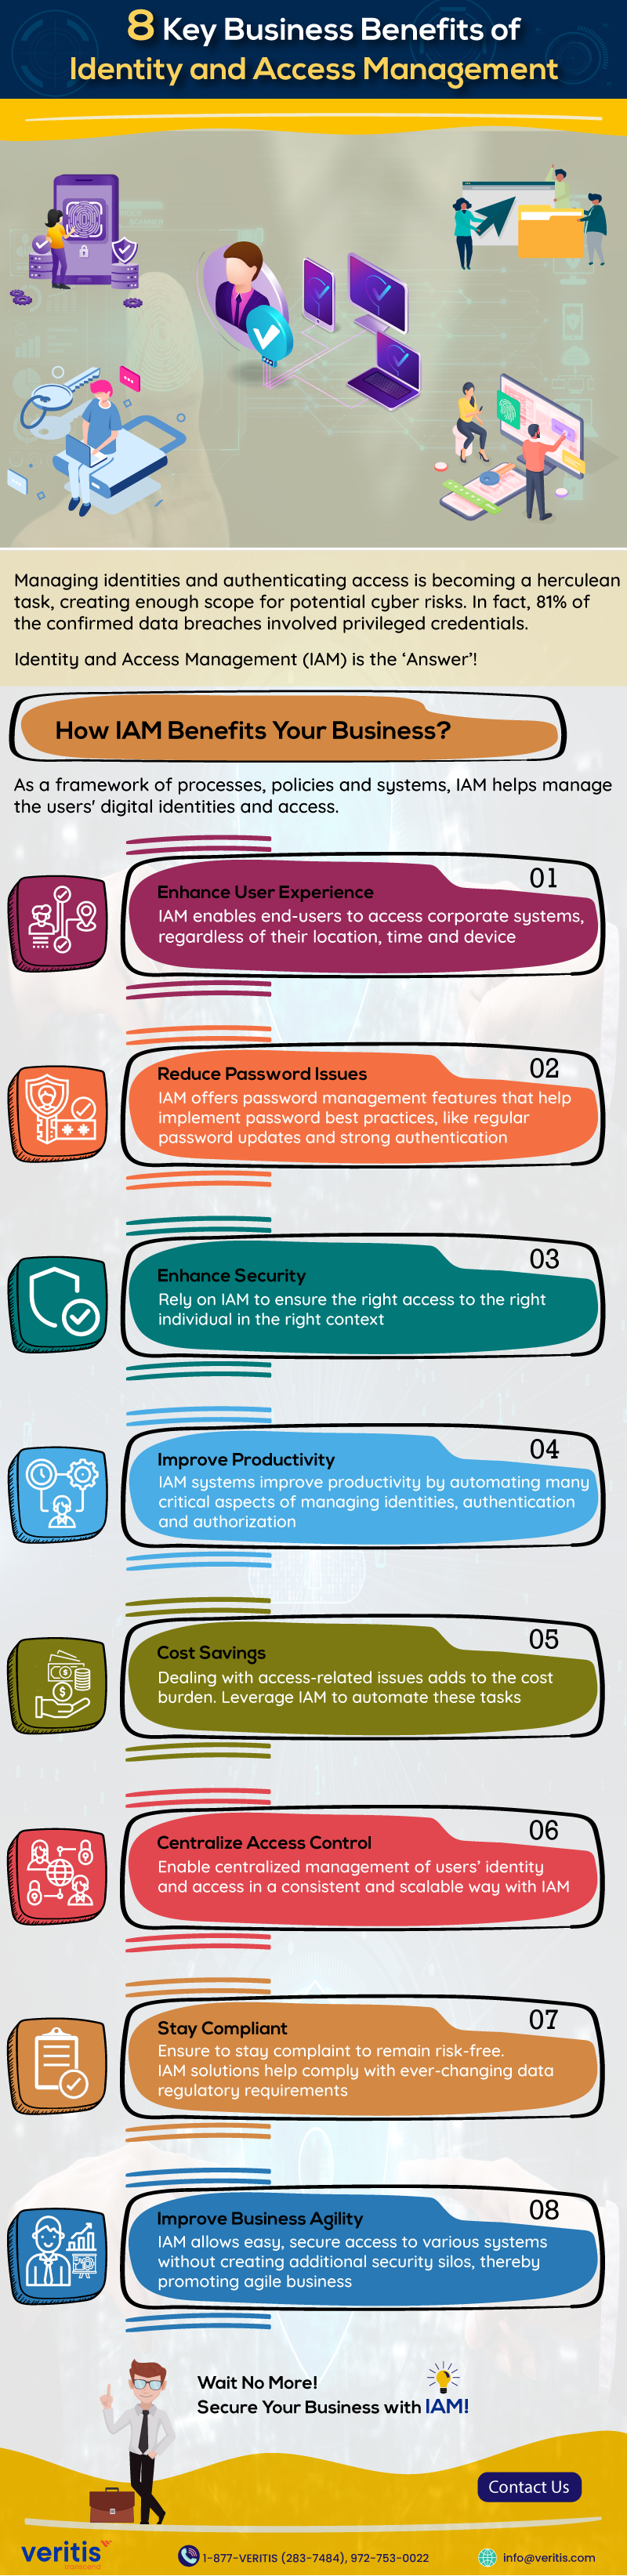 8 Key Business Benefits of Identity and Access Management Infographic Veritis